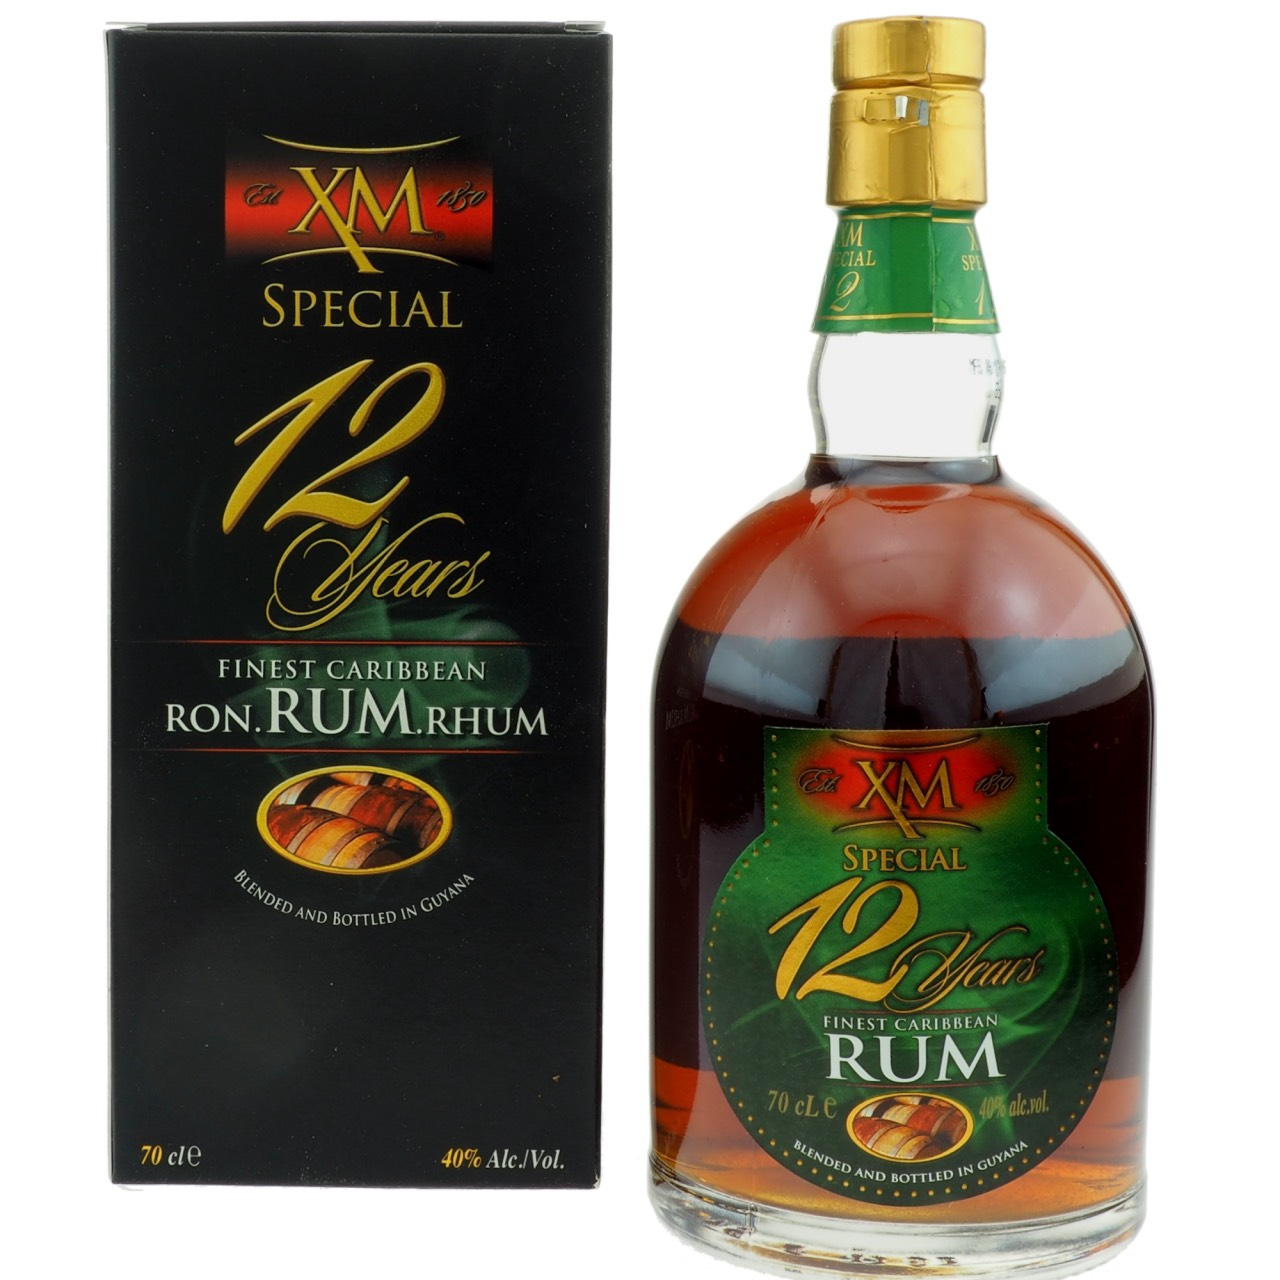 Bottle image of Special 12 Years